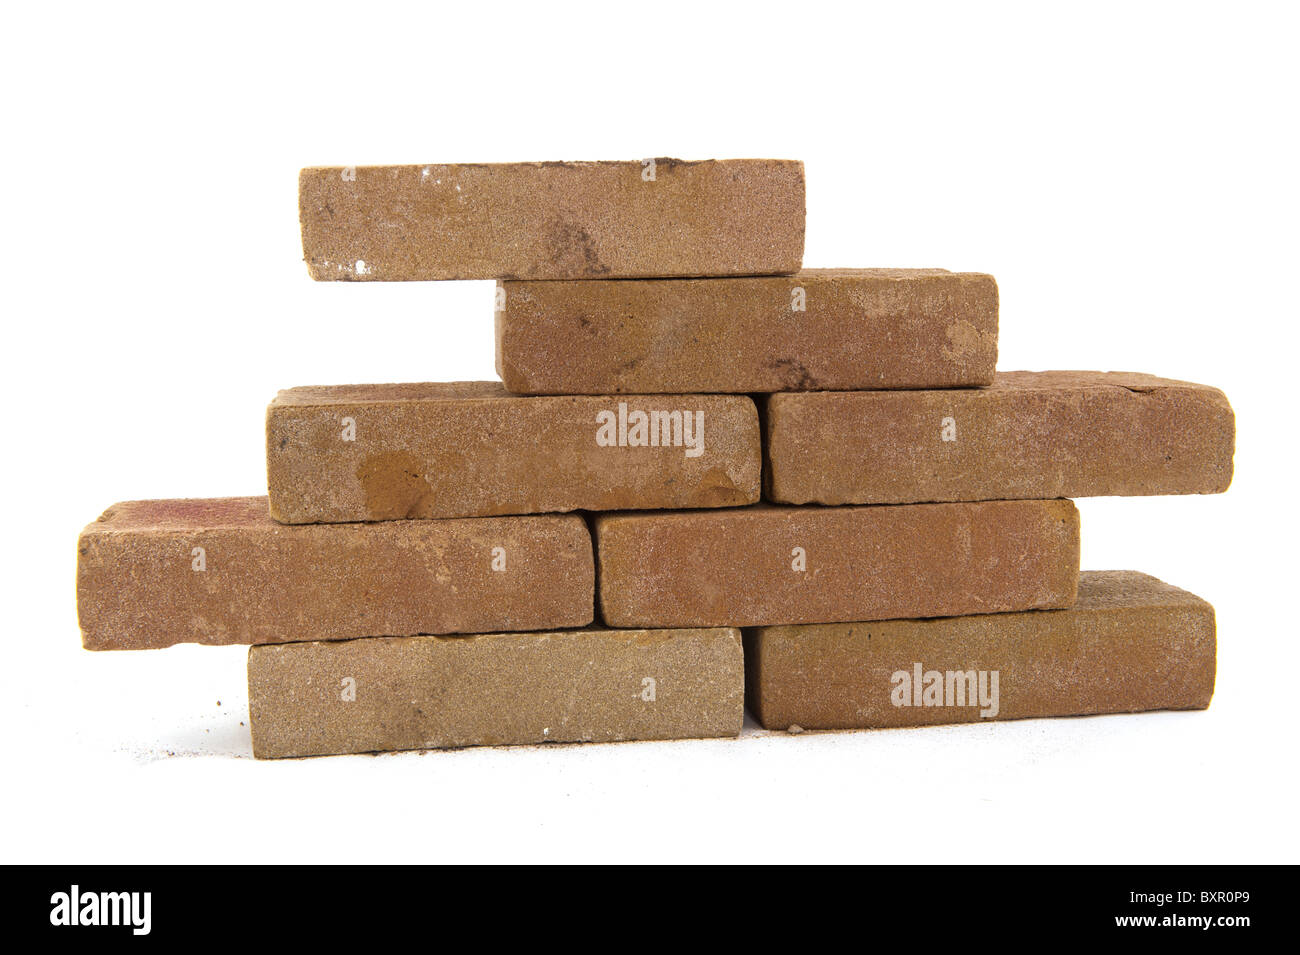 Building a wall with many bricks isolated over white - Stock Image